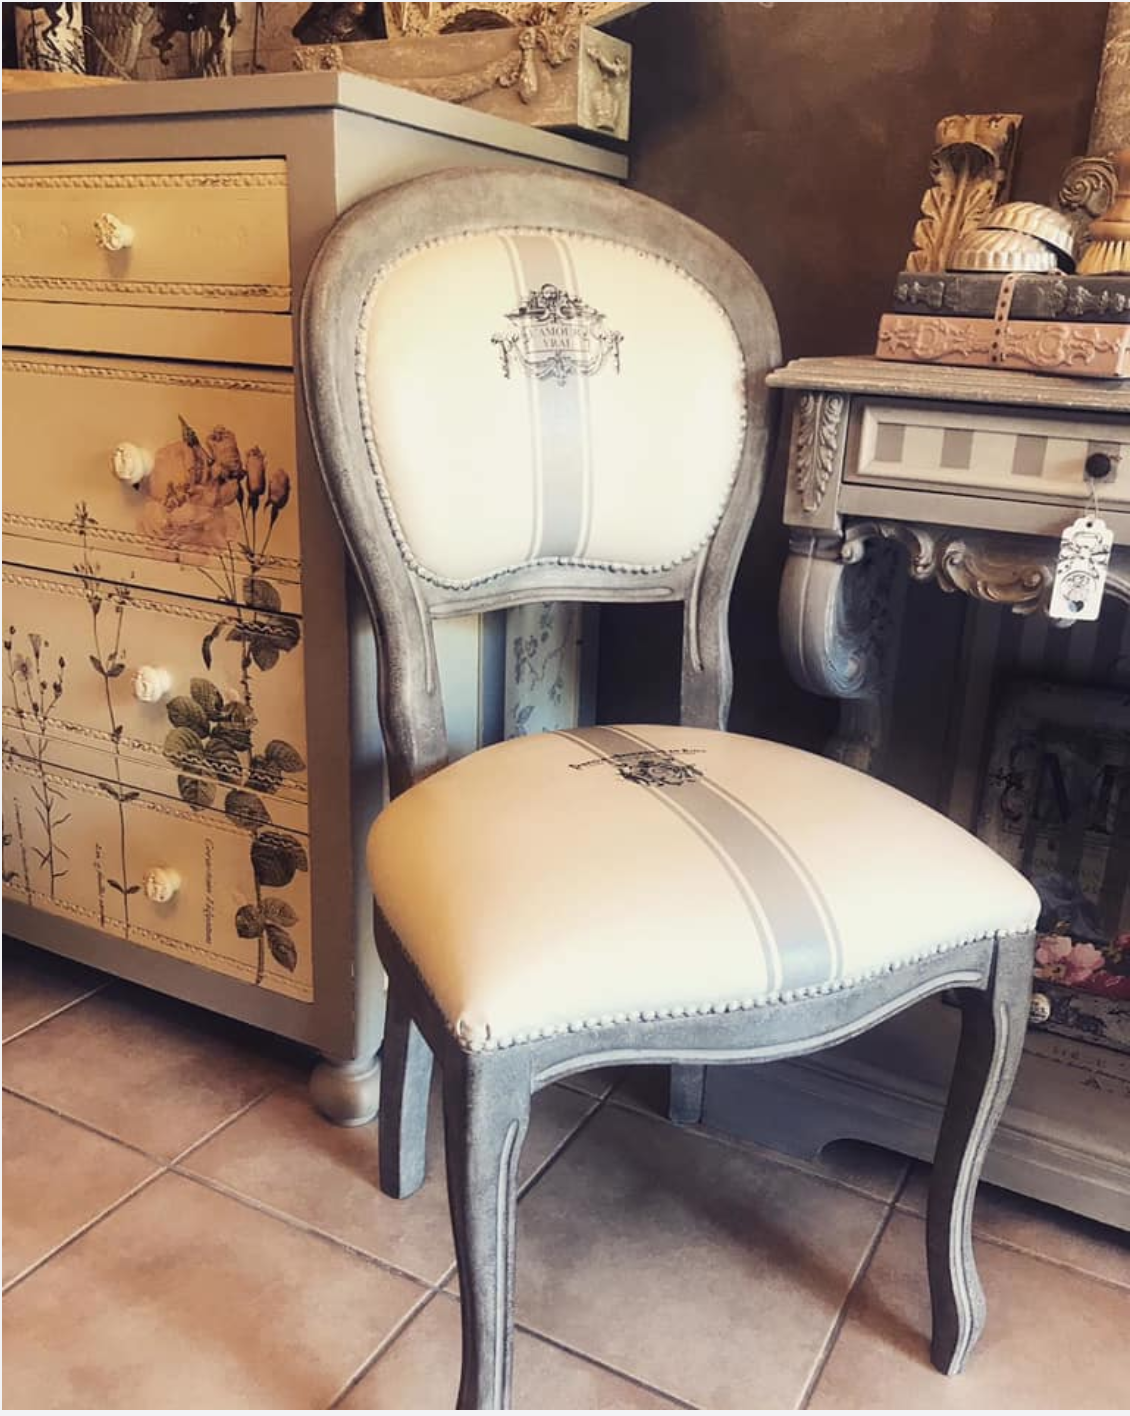 French country cottage DIY chair makeover with Iron Orchid Designs rub on furniture decals